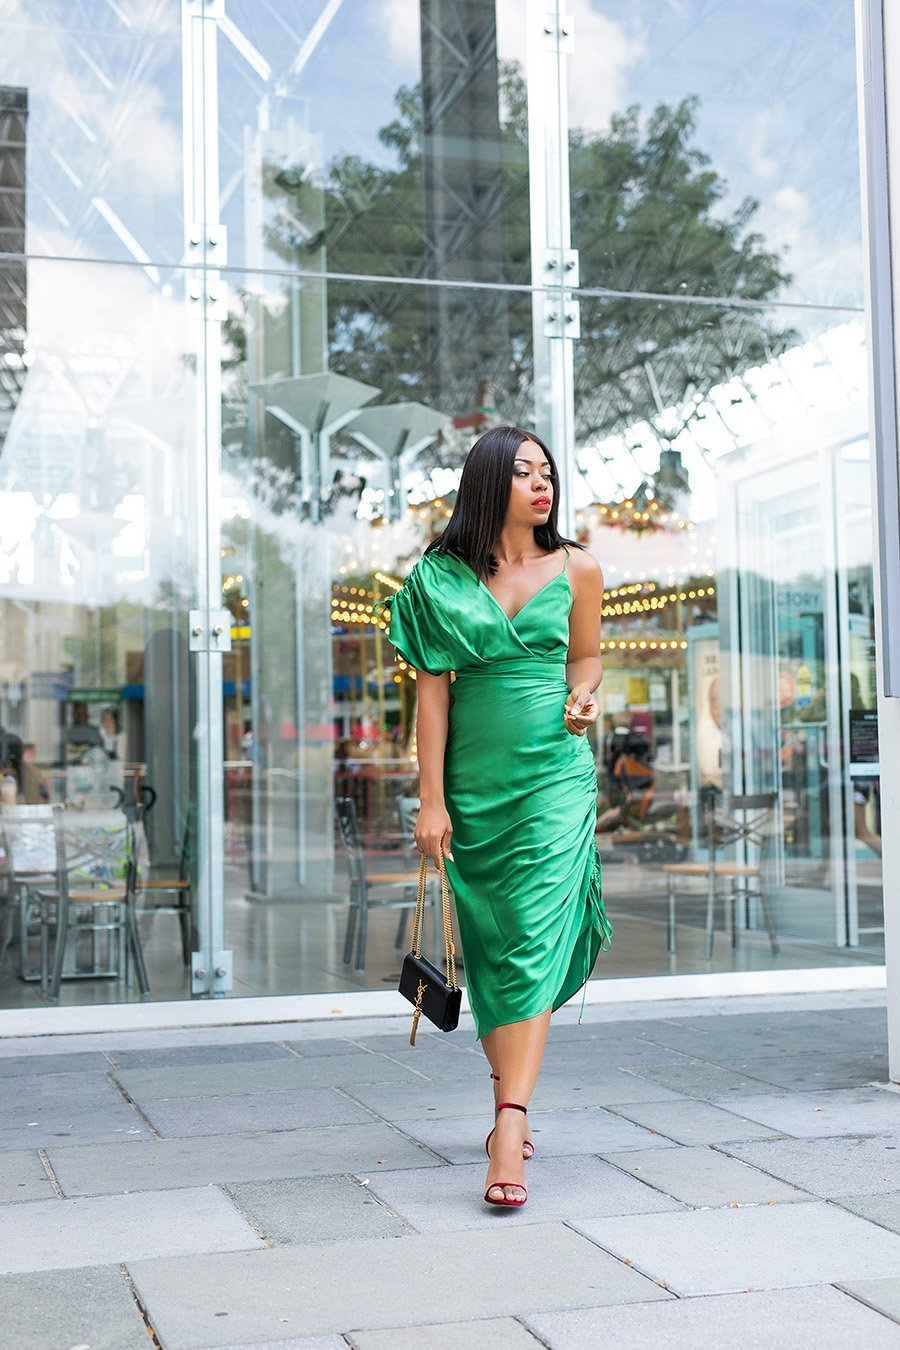 fashion-blogger-Stella-Adewunmi-of-Jadore-Fashion-shares-favorite-holiday-party-style-dresses-and-gifts